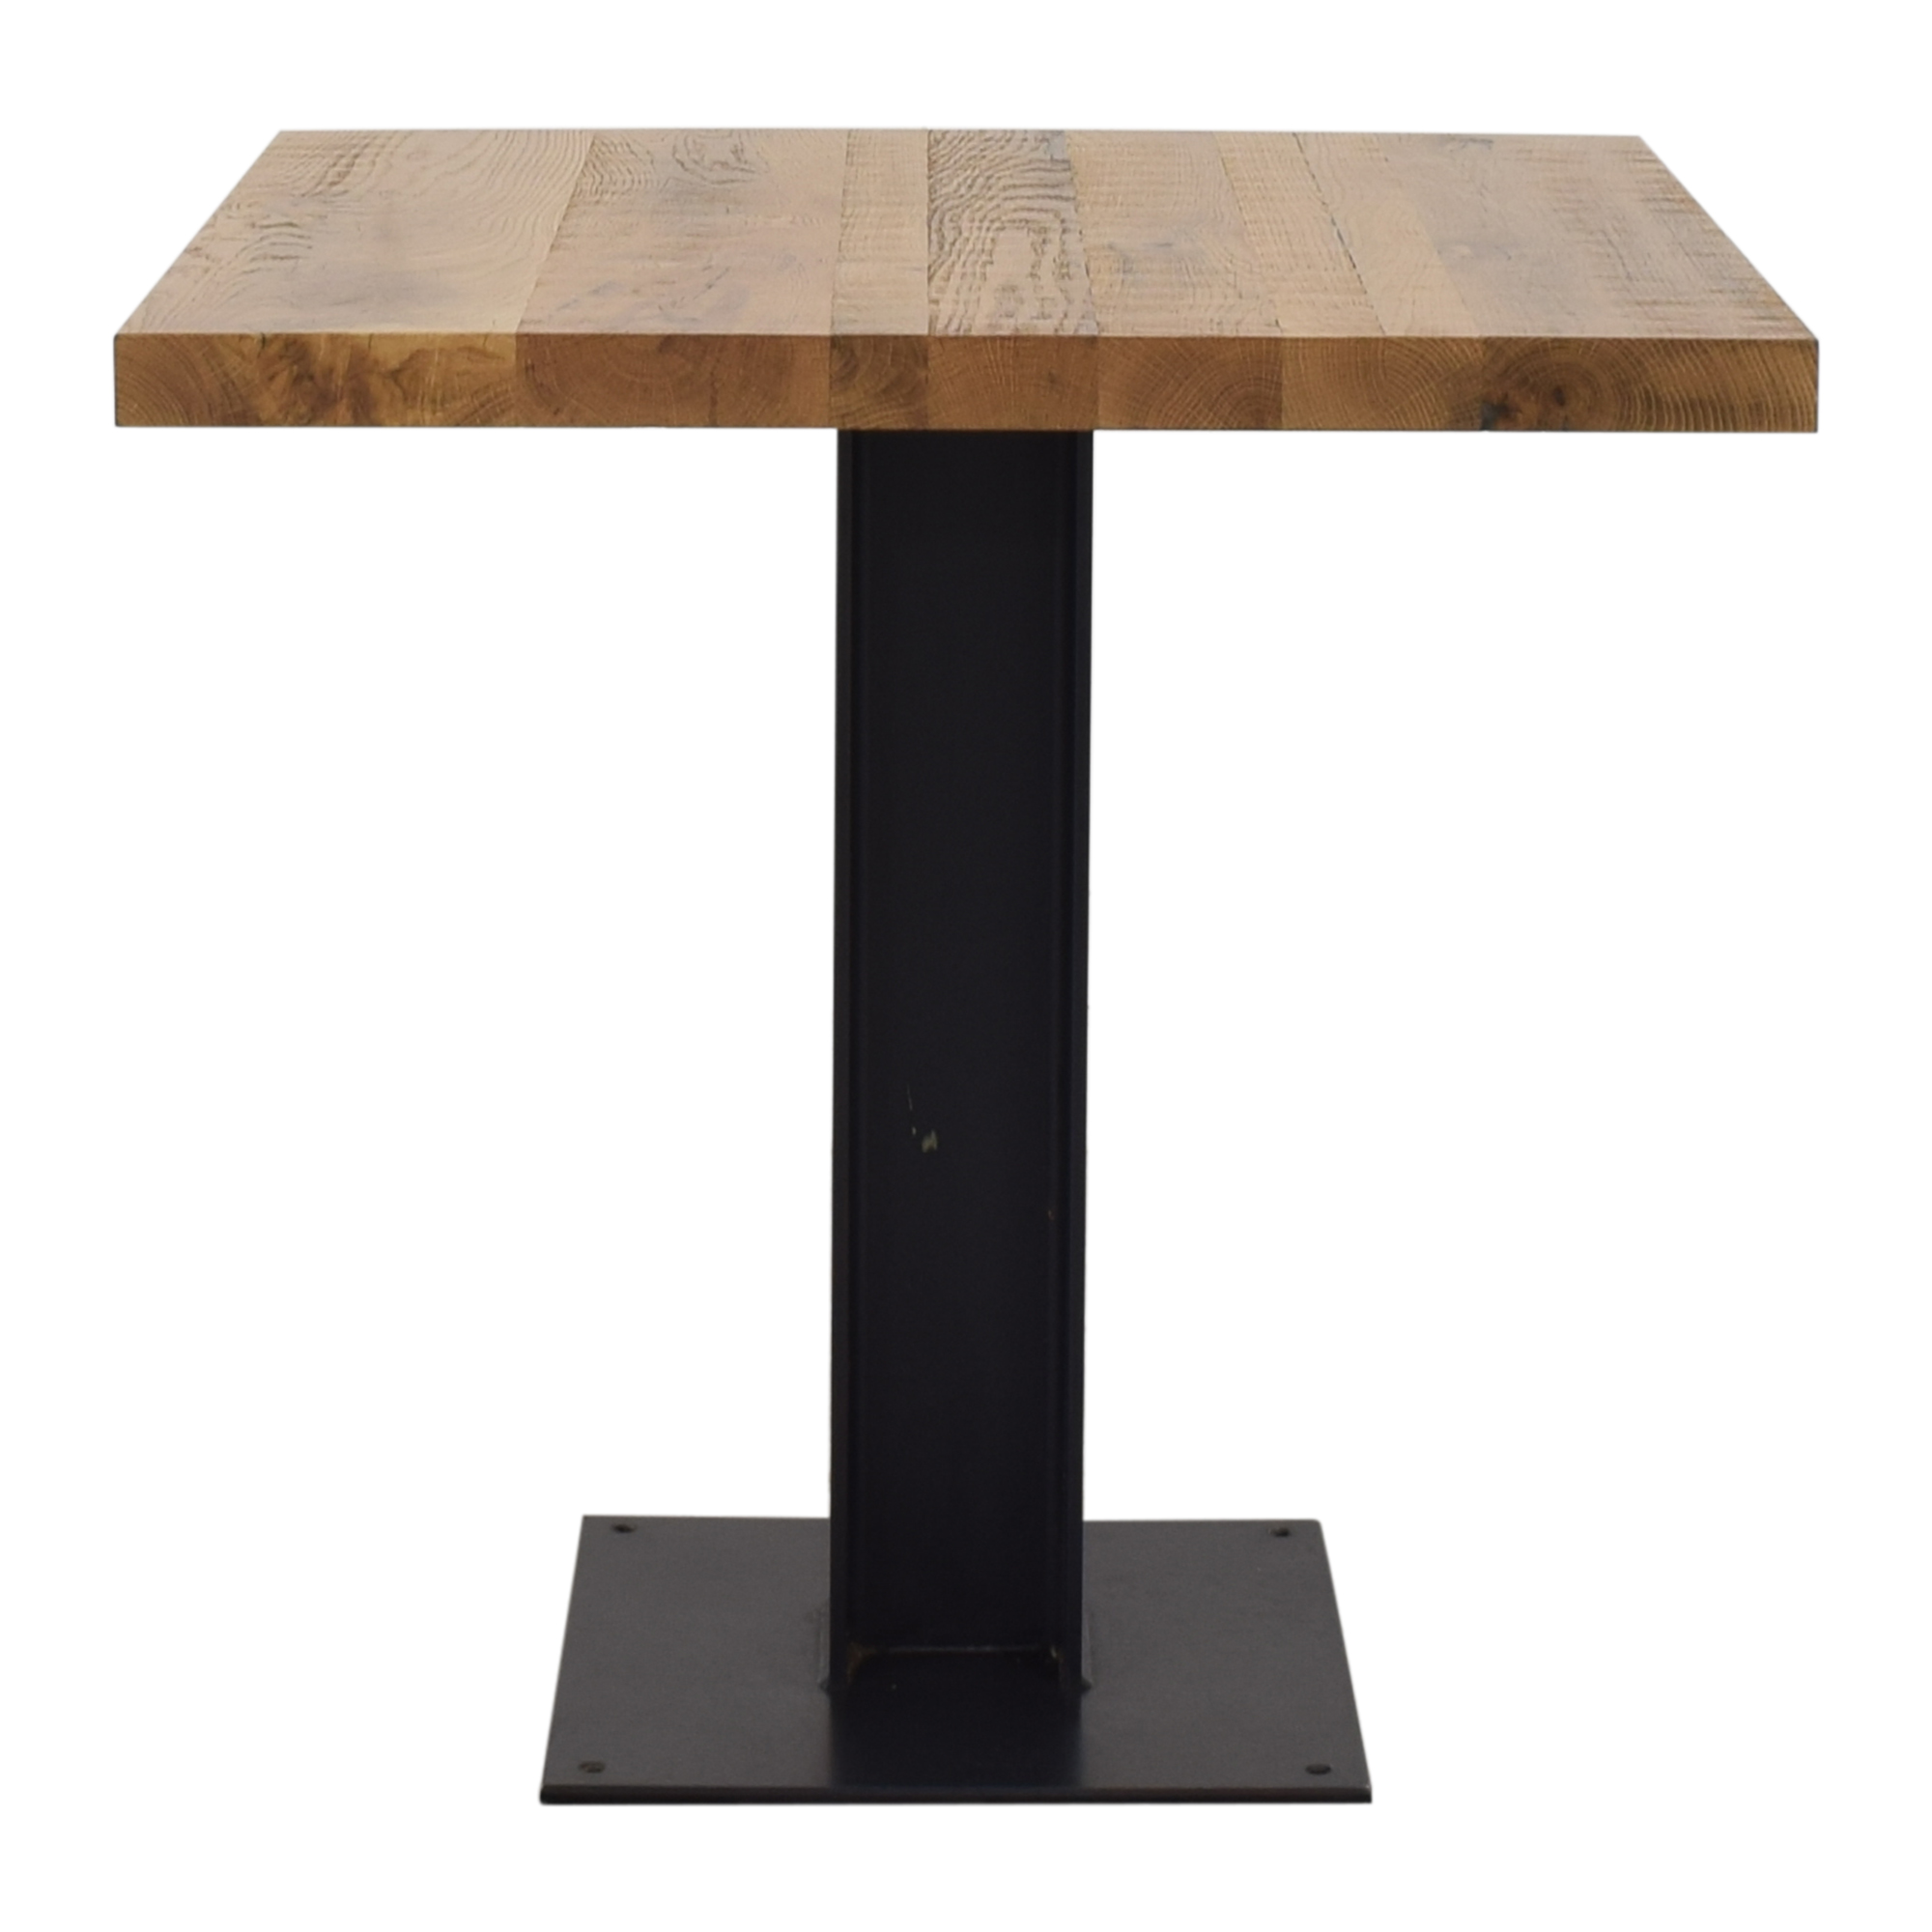 Crow Works Crow Works Fixed I-Beam Square Table nj